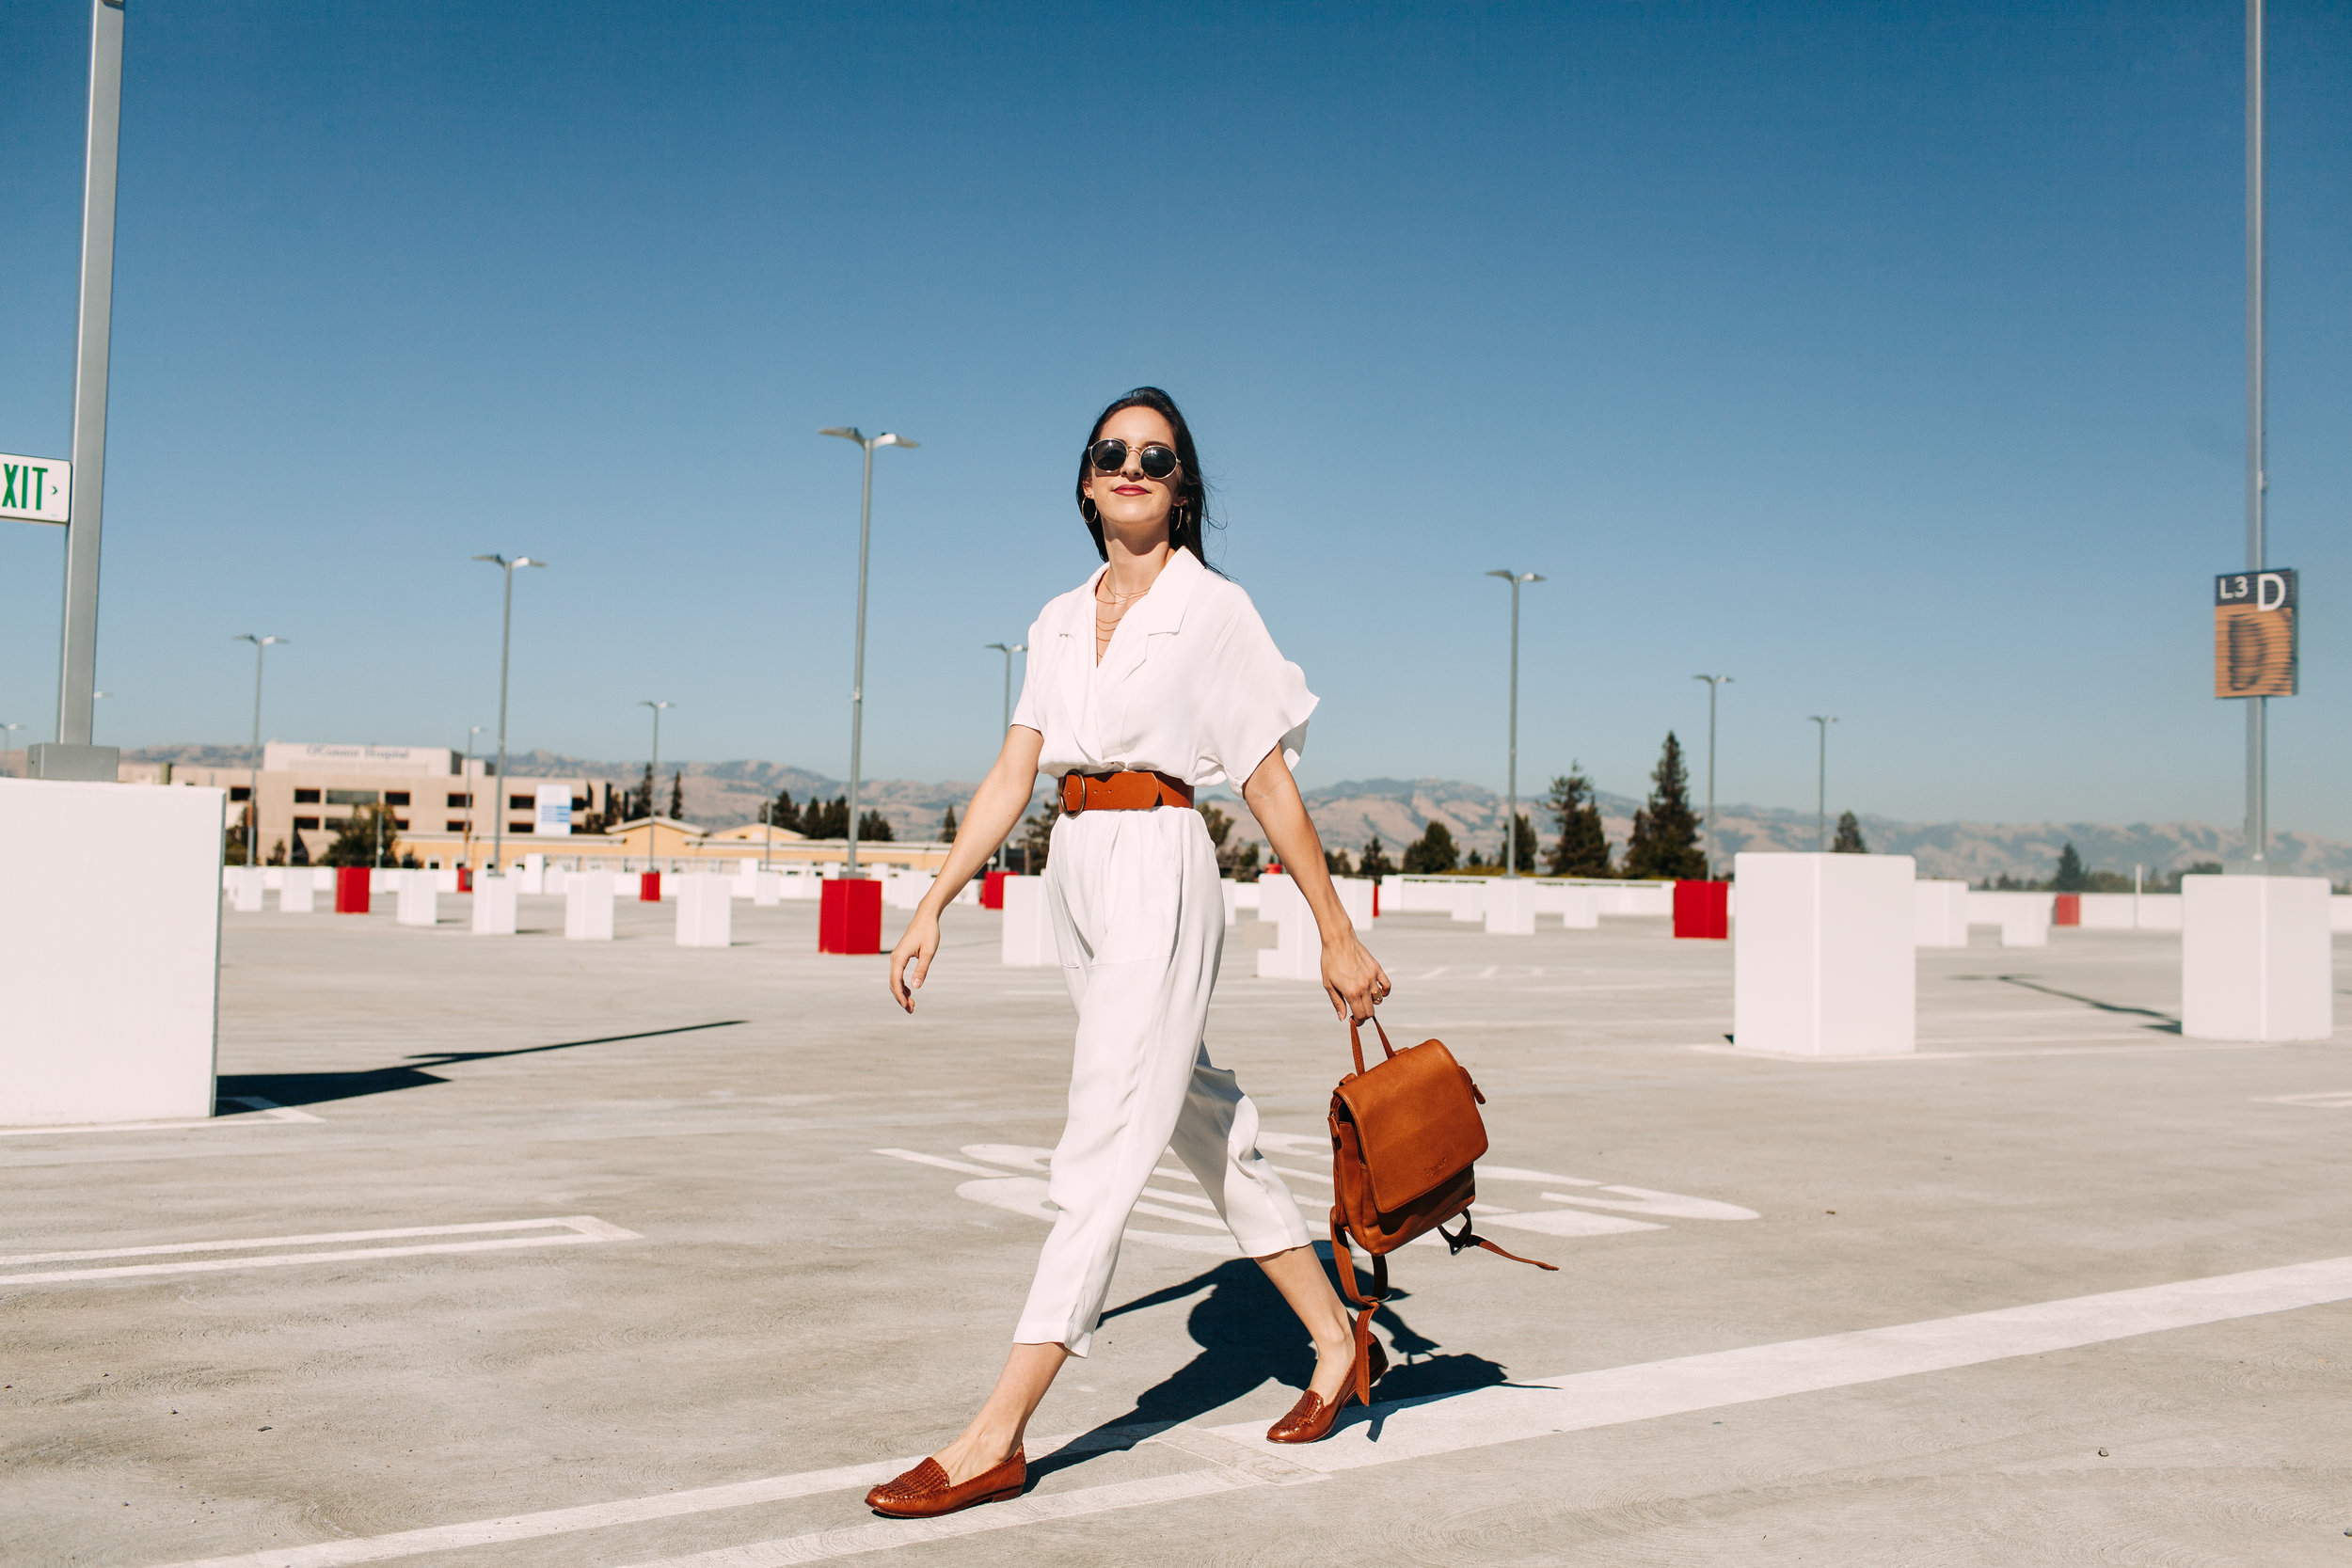 White_outfit (19 of 20).jpg